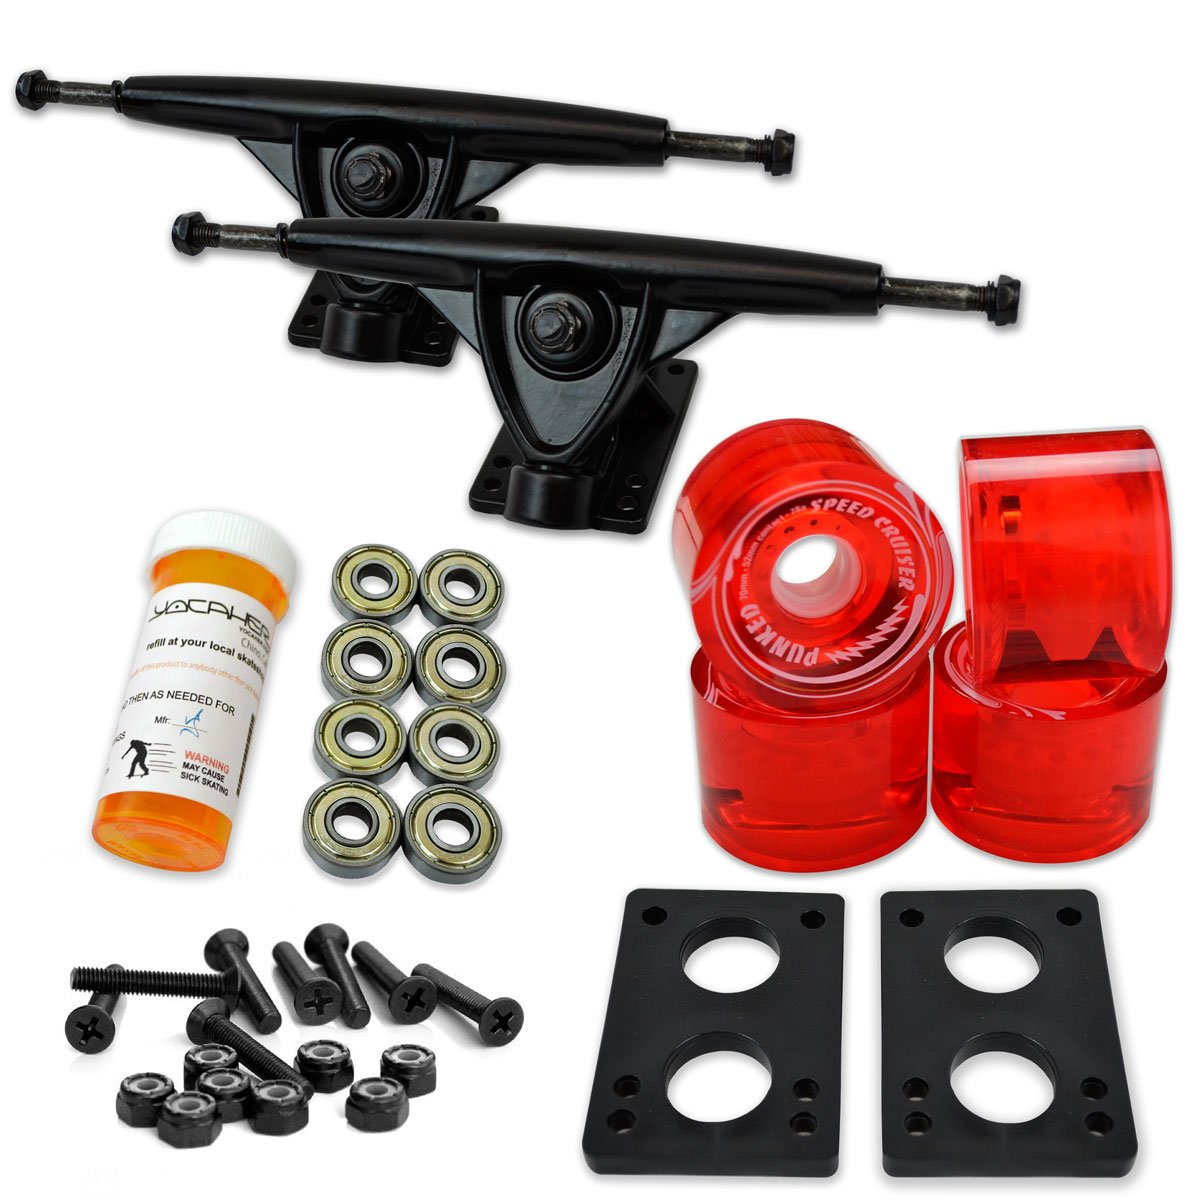 Yocaher Longboard Skateboard Trucks Combo Set w/ 71mm Wheels + 9.675'' Polished/Black Trucks Package, Gel Red Wheel, Black Trucks by Yocaher